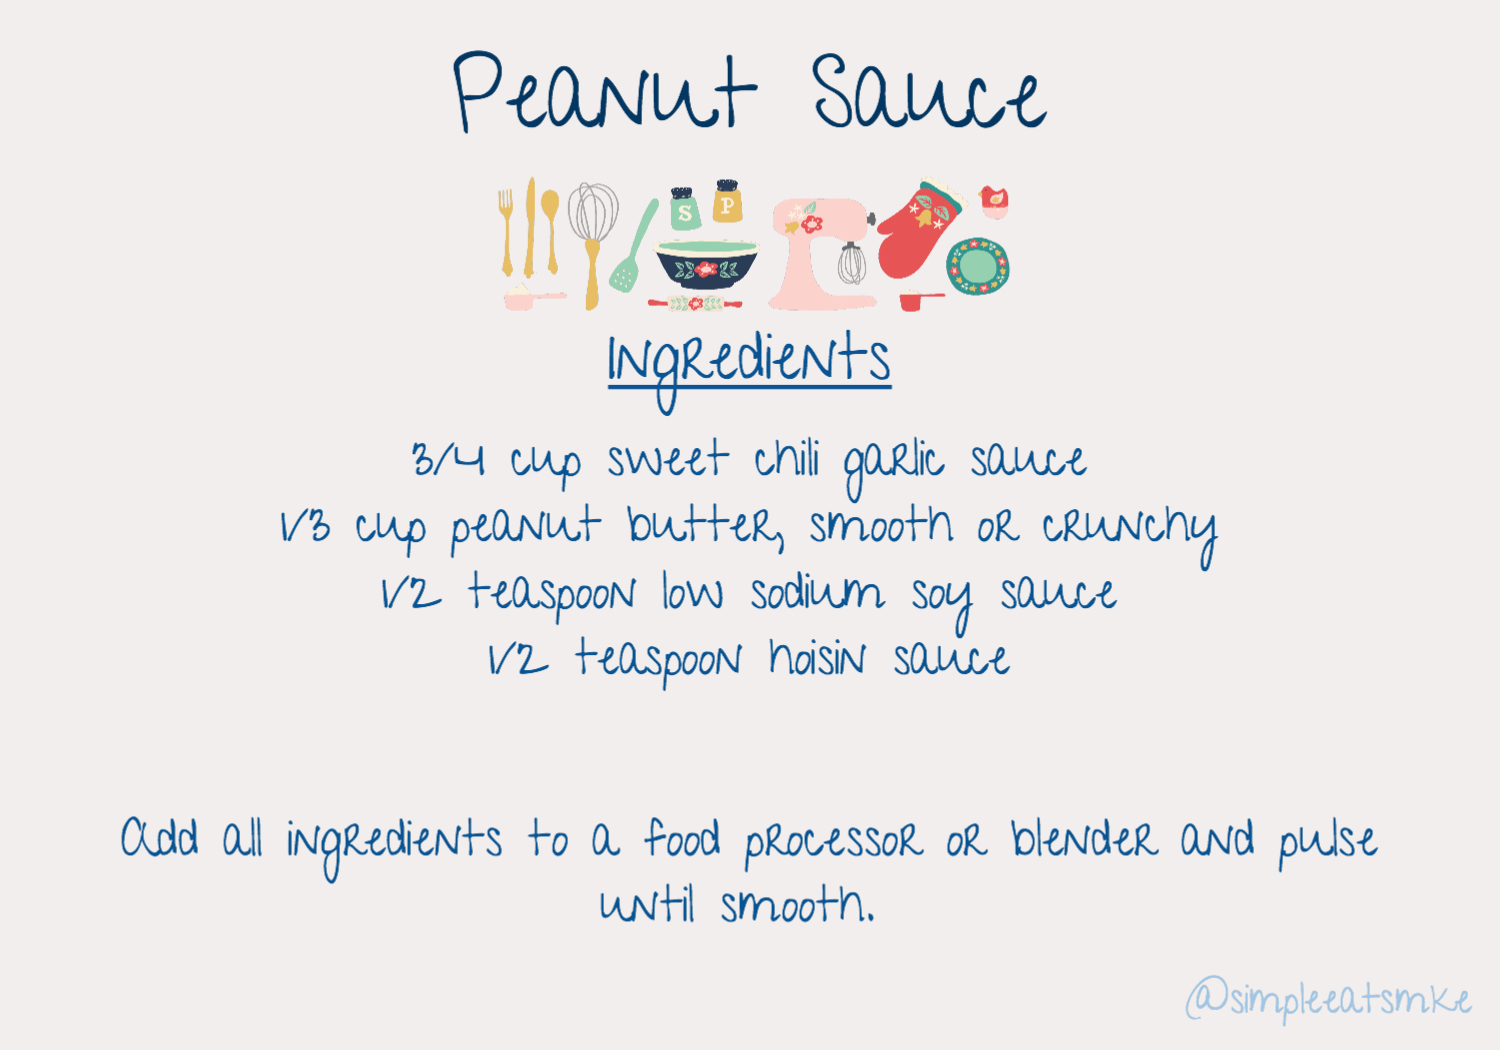 6_15 Peanut Sauce Ingredients _ Instructions .jpg